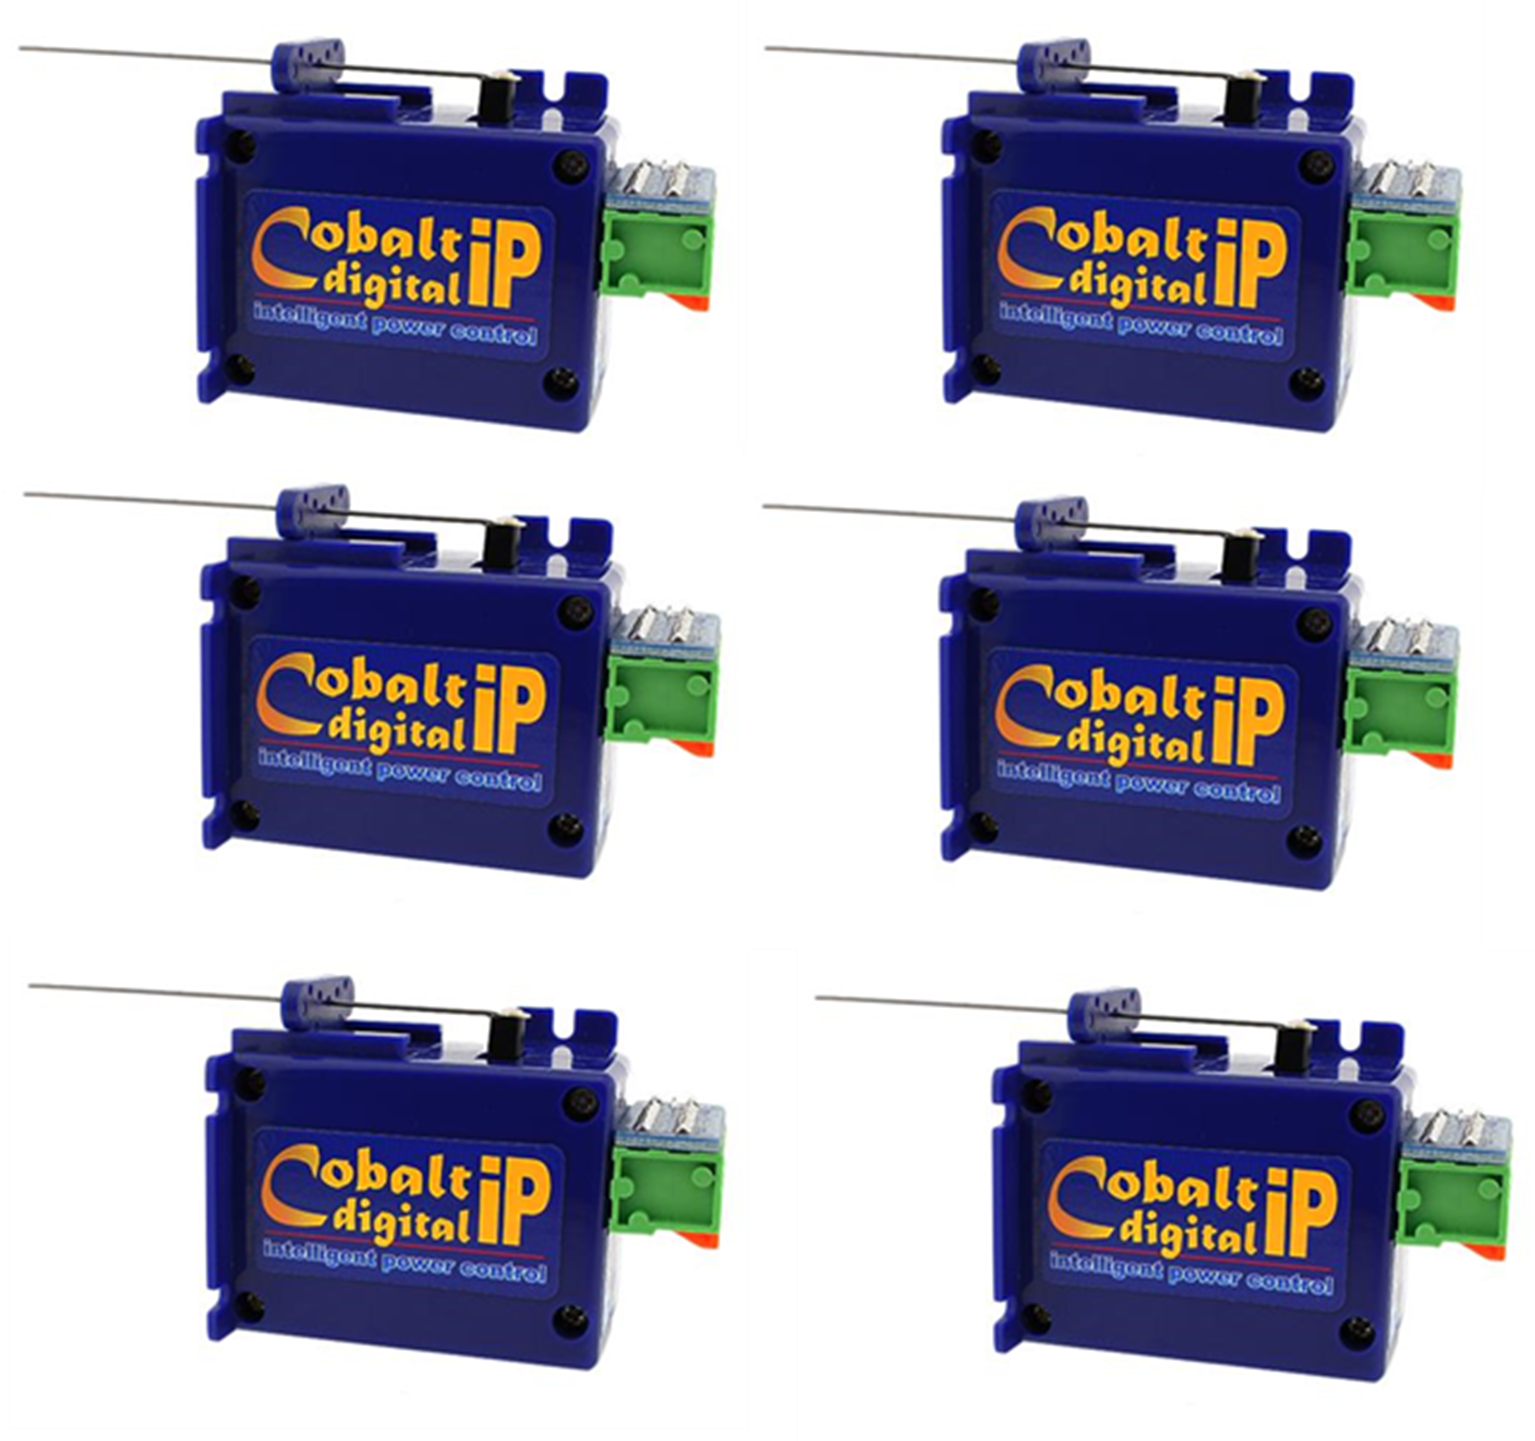 Cobalt iP Digital Point Motor (6 Pack)